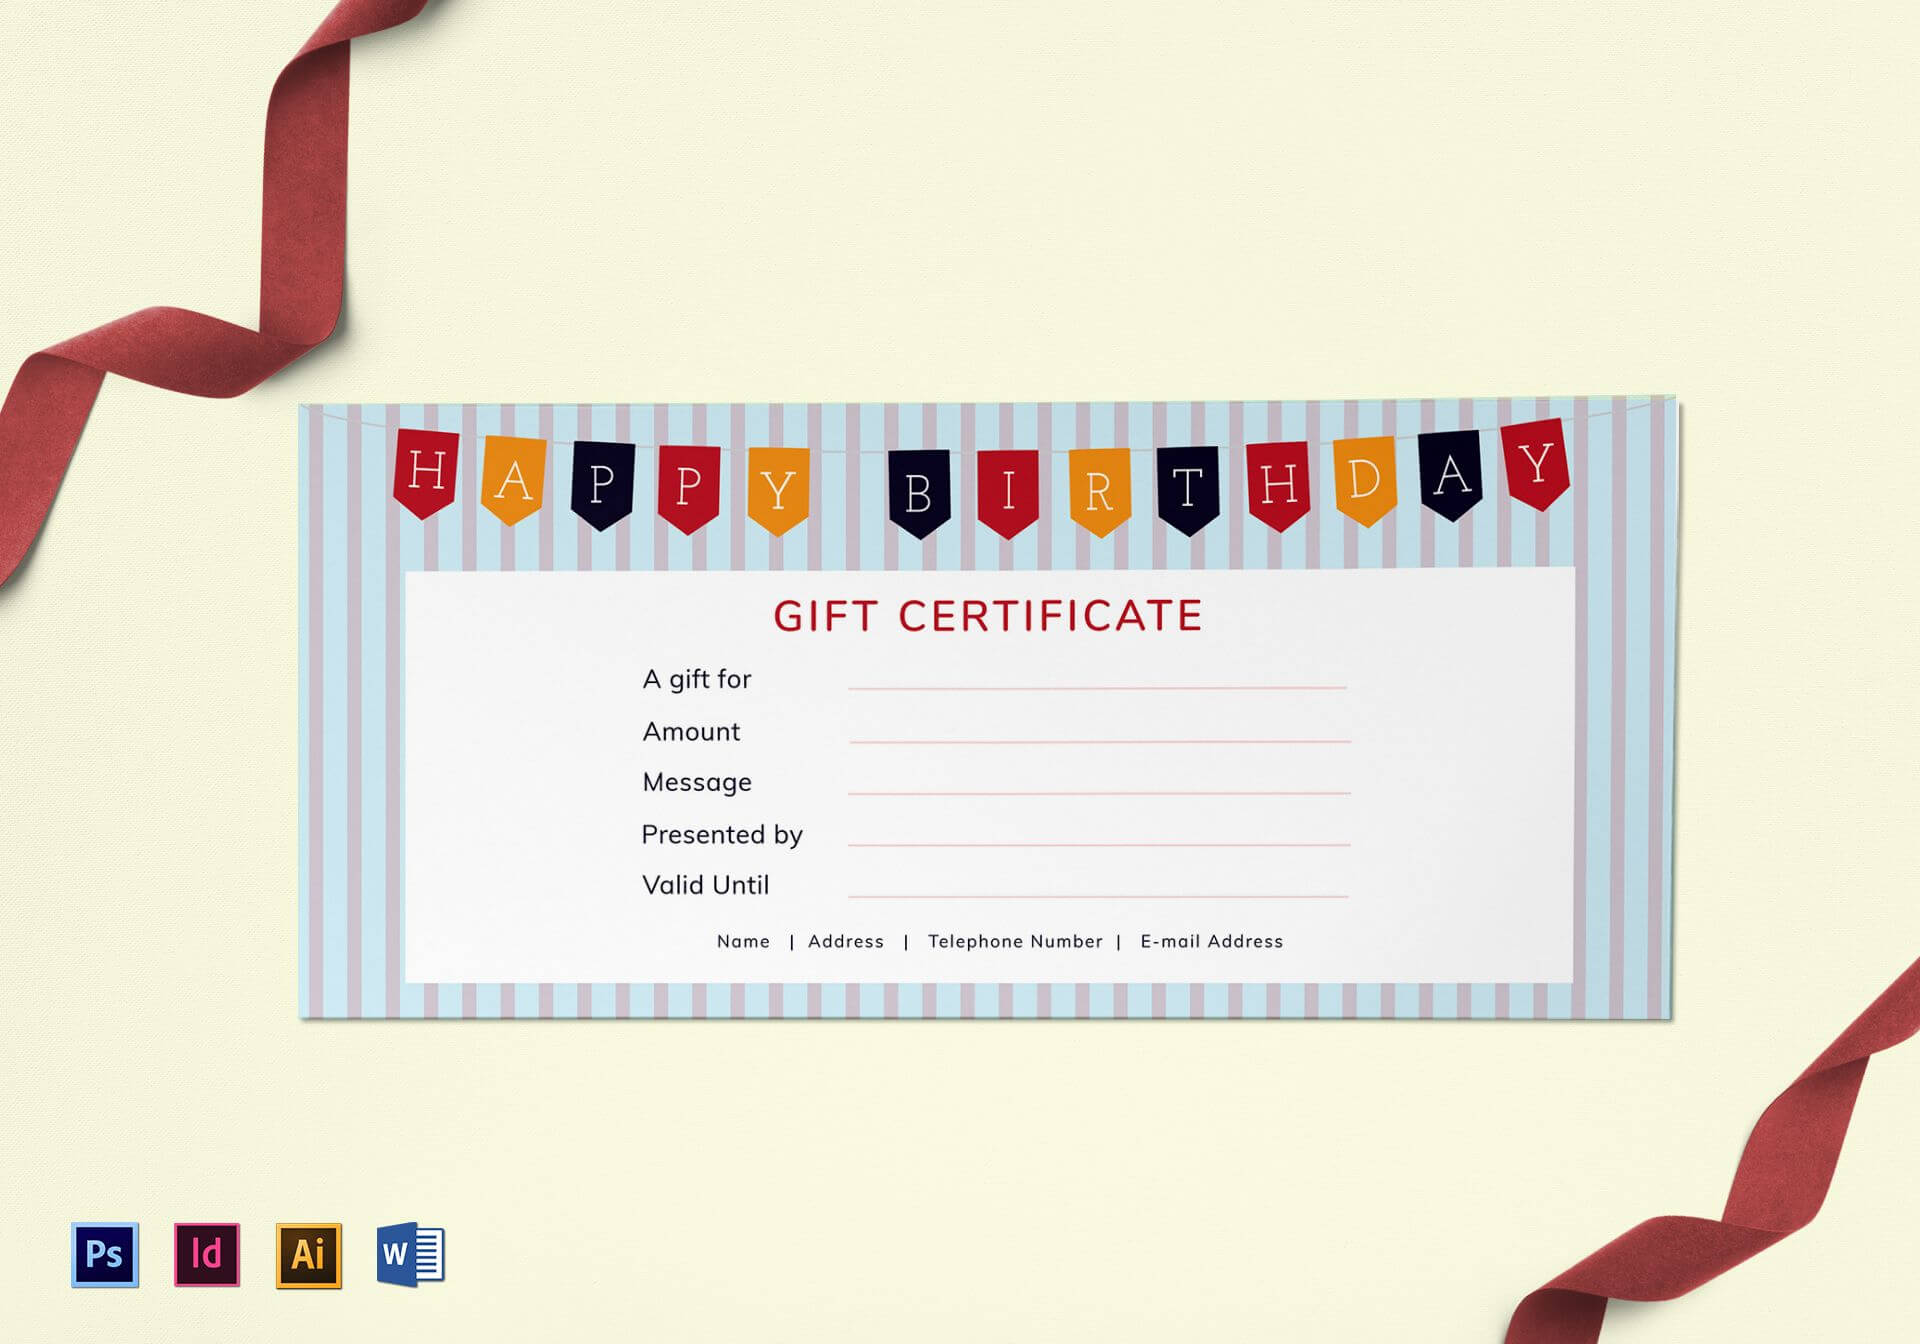 032 Template Ideas Free Silent Auction Gift Certificate In Mock Certificate Template